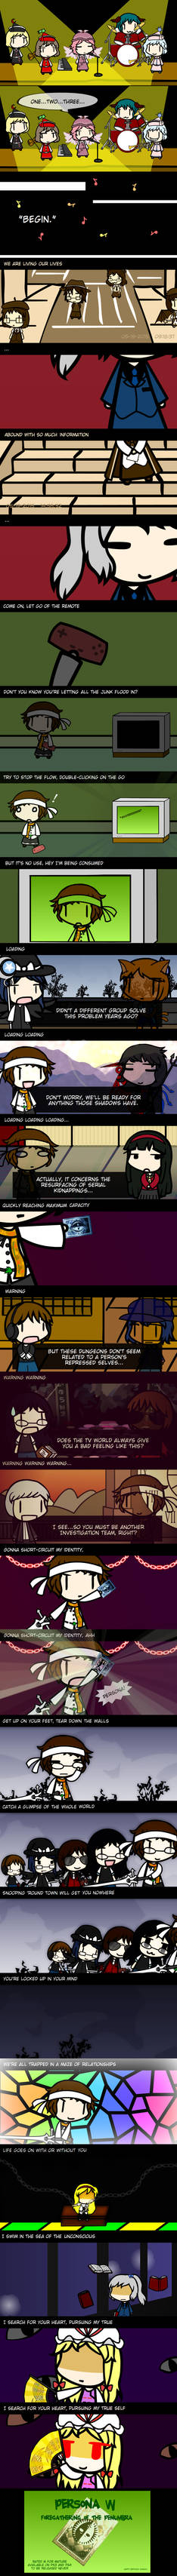 Birthday Comic for Shingo - Pursuing My True Self